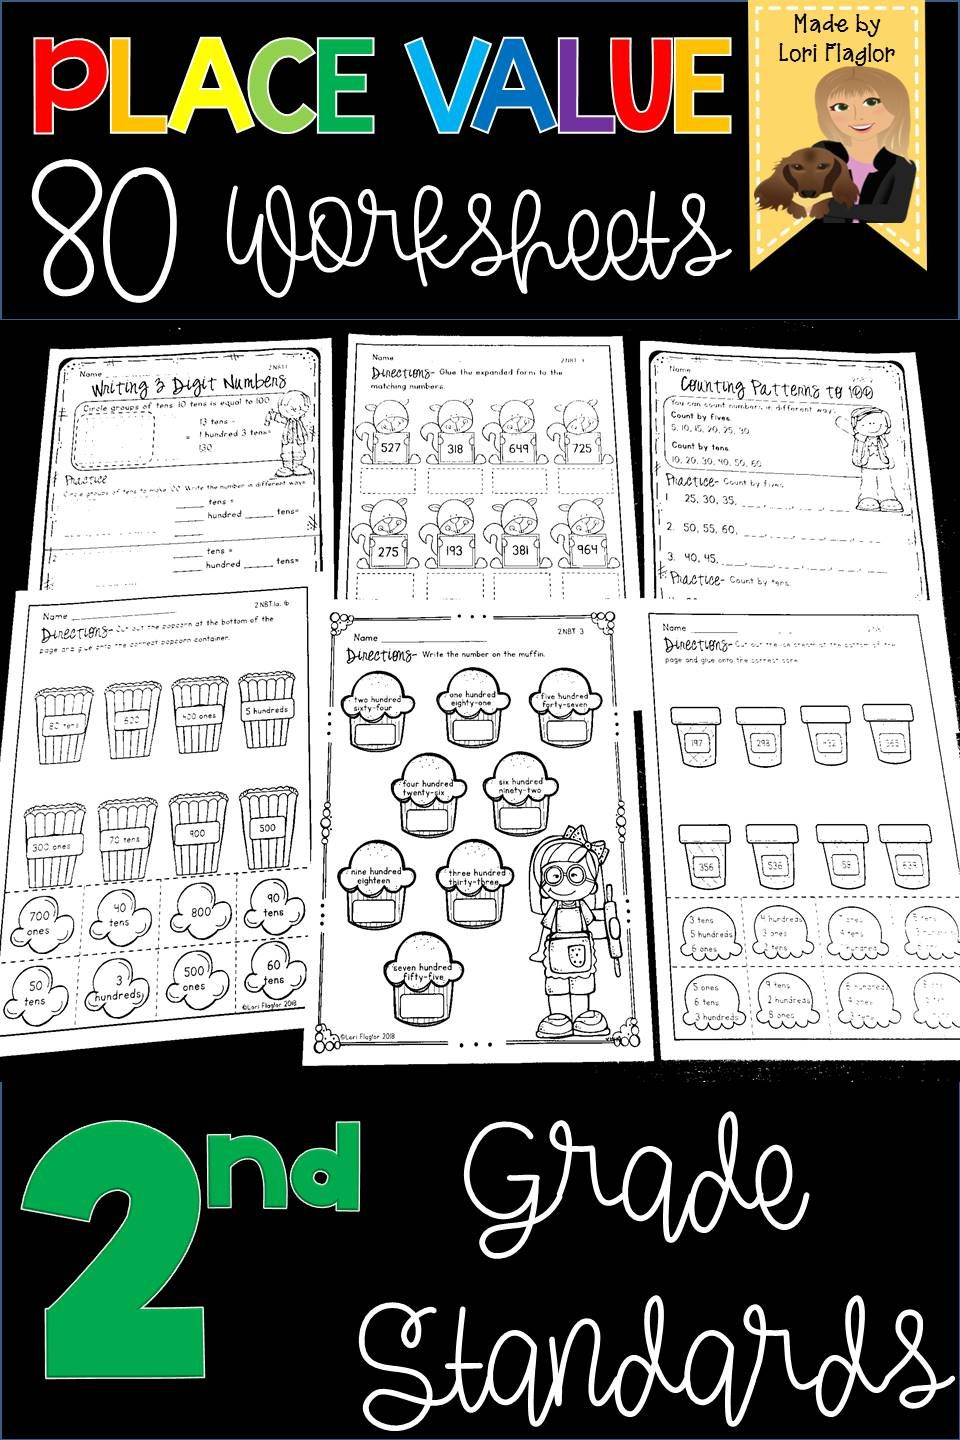 Place Value 2nd Grade Standards Distance Learning Fun Worksheets Teaching Common Core Teaching Math [ 1440 x 960 Pixel ]